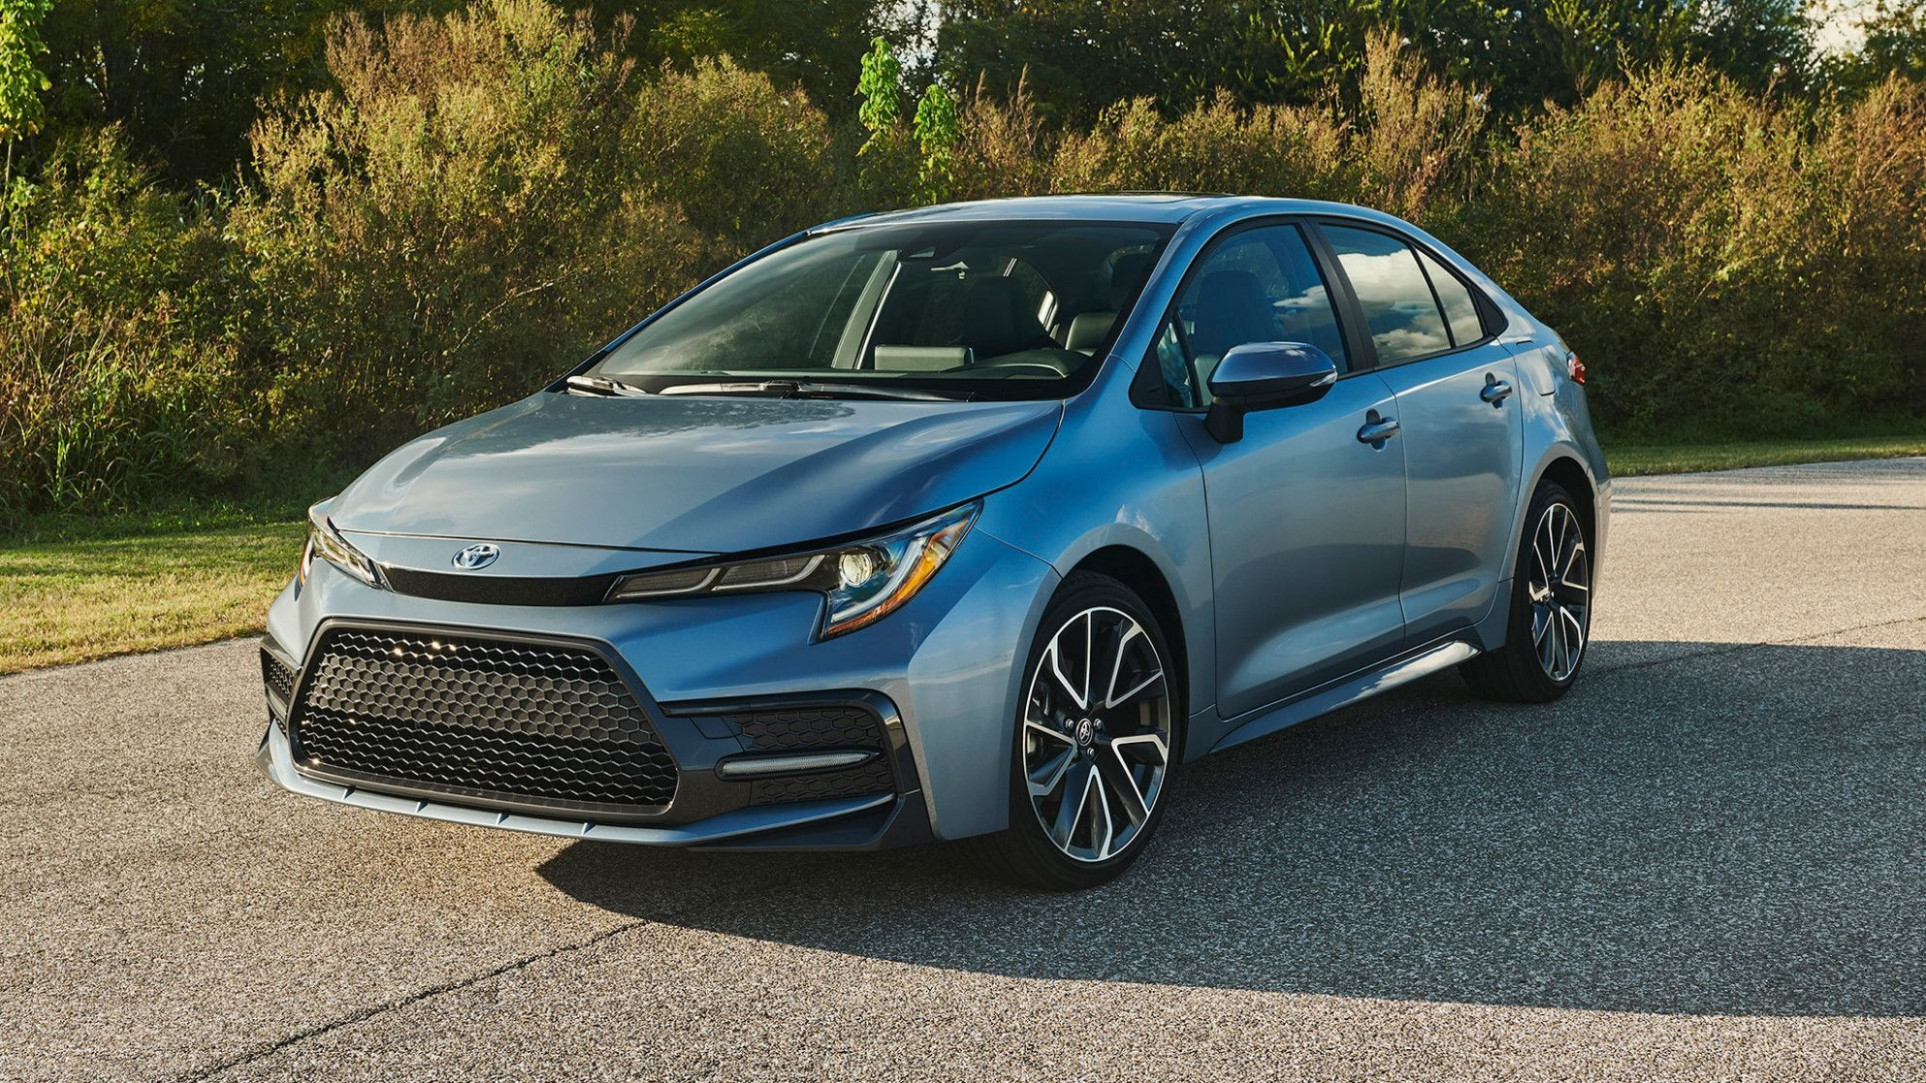 Toyota Im 6 Reviews in 6 (With images) | Upcoming cars ...